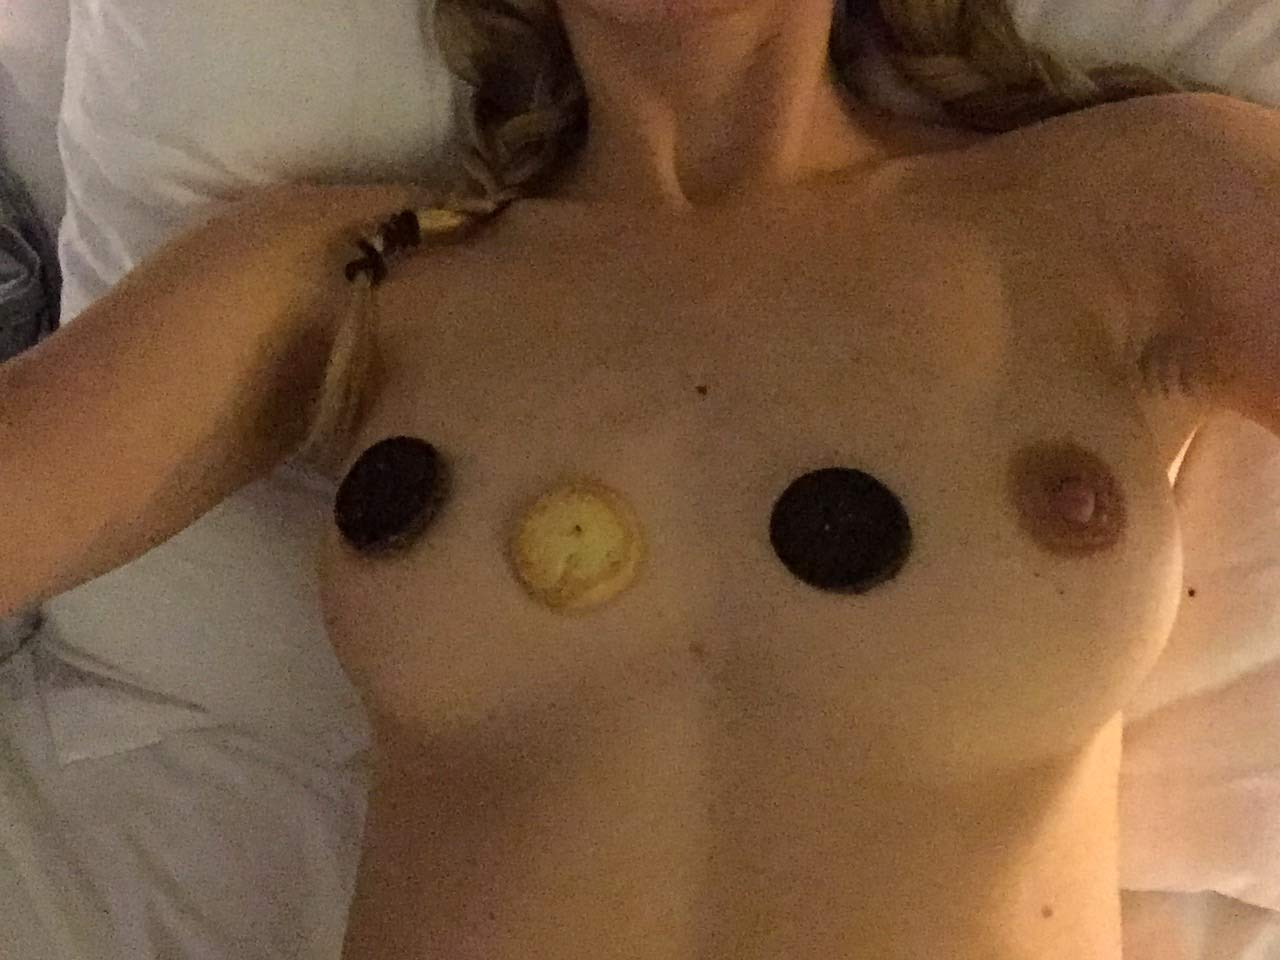 Leaked Samara Weaving Nude Hacked Photos Of Her Tits Scandal Planet